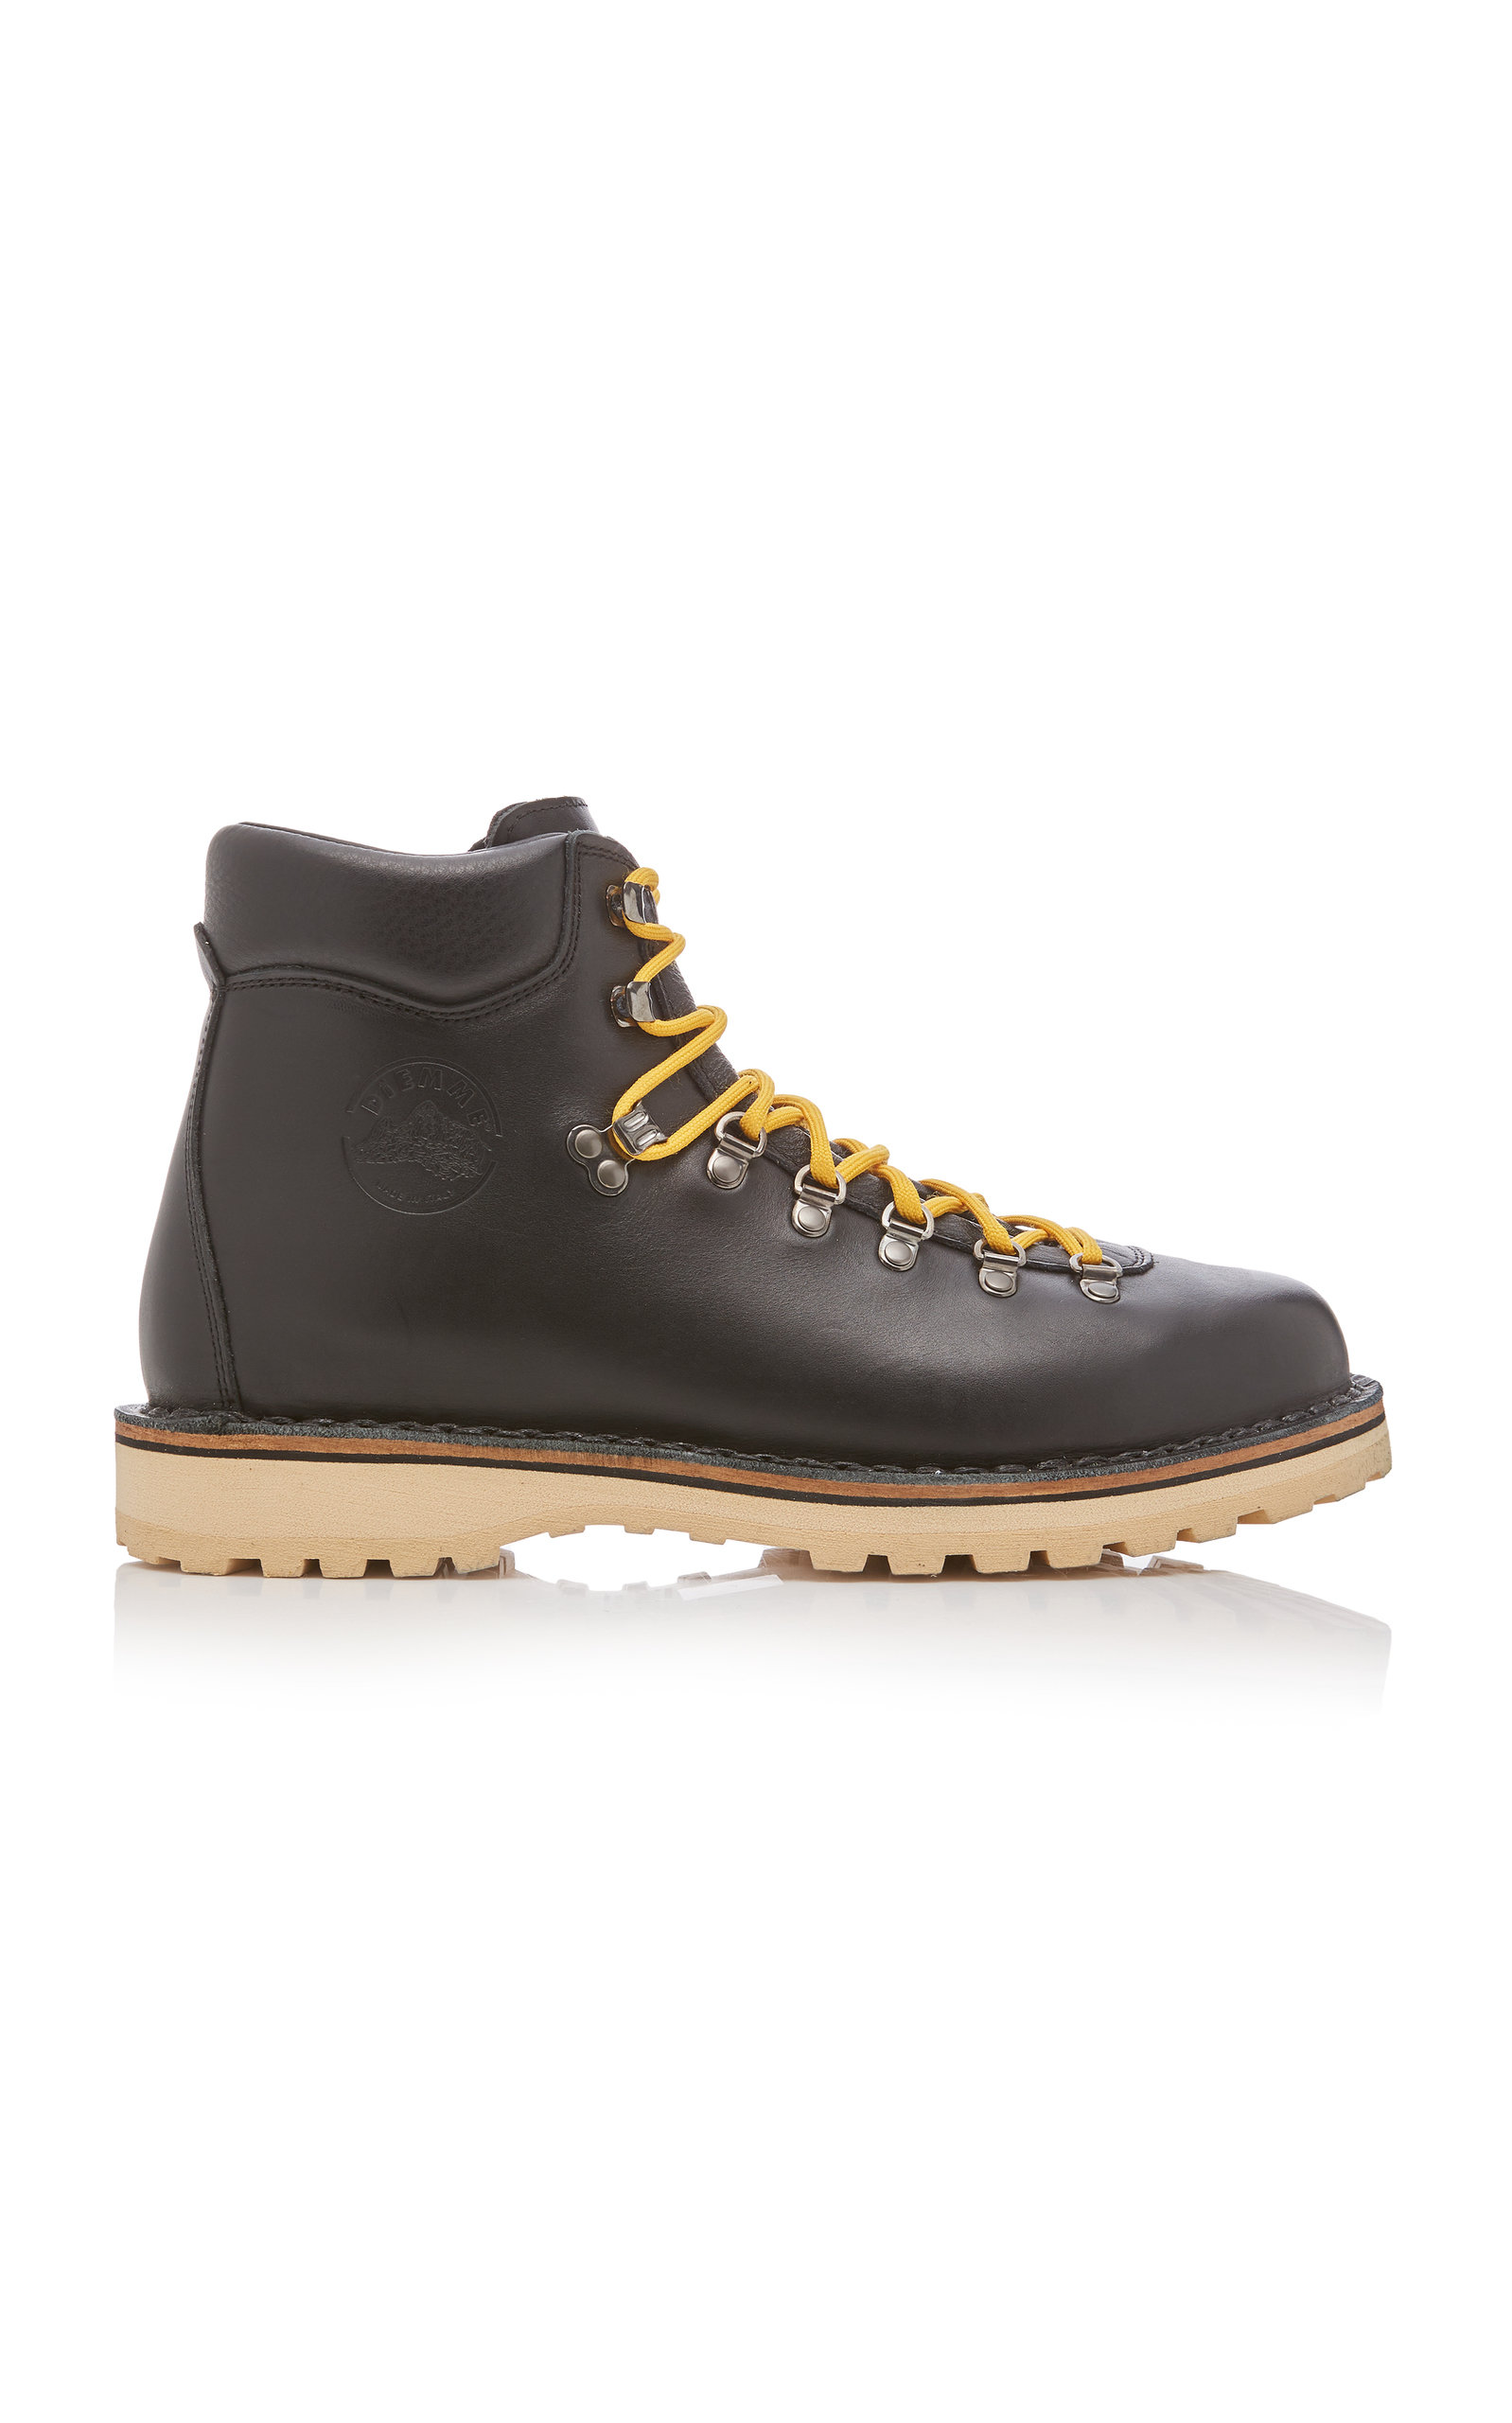 Diemme Boots ROCCIA BLACK LEATHER HIKING BOOTS